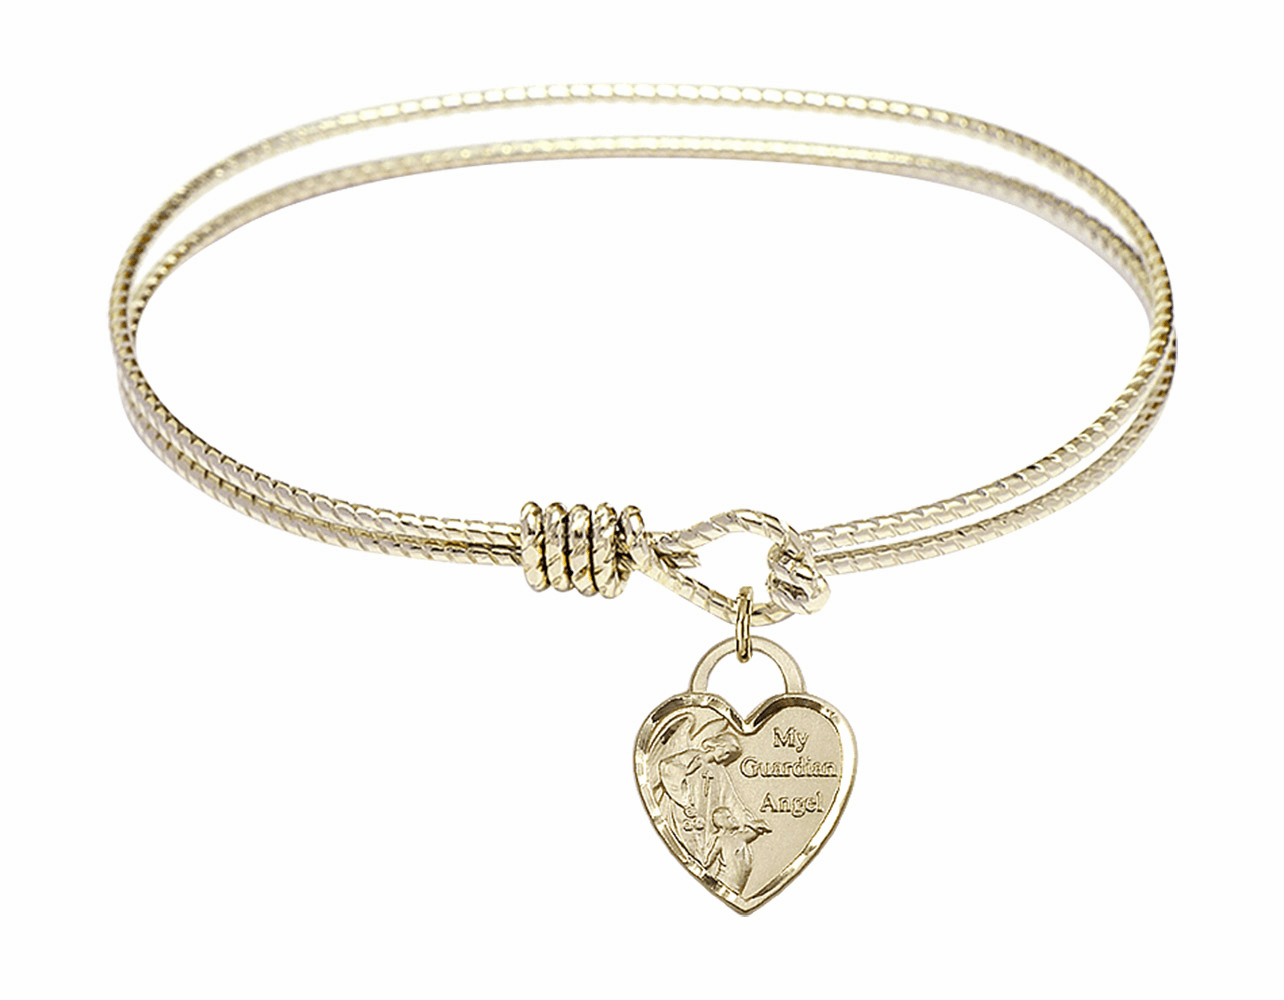 Round Twist Eye Hook Bangle Bracelet w/Heart My Guardian Angel Charm by Bliss Mfg